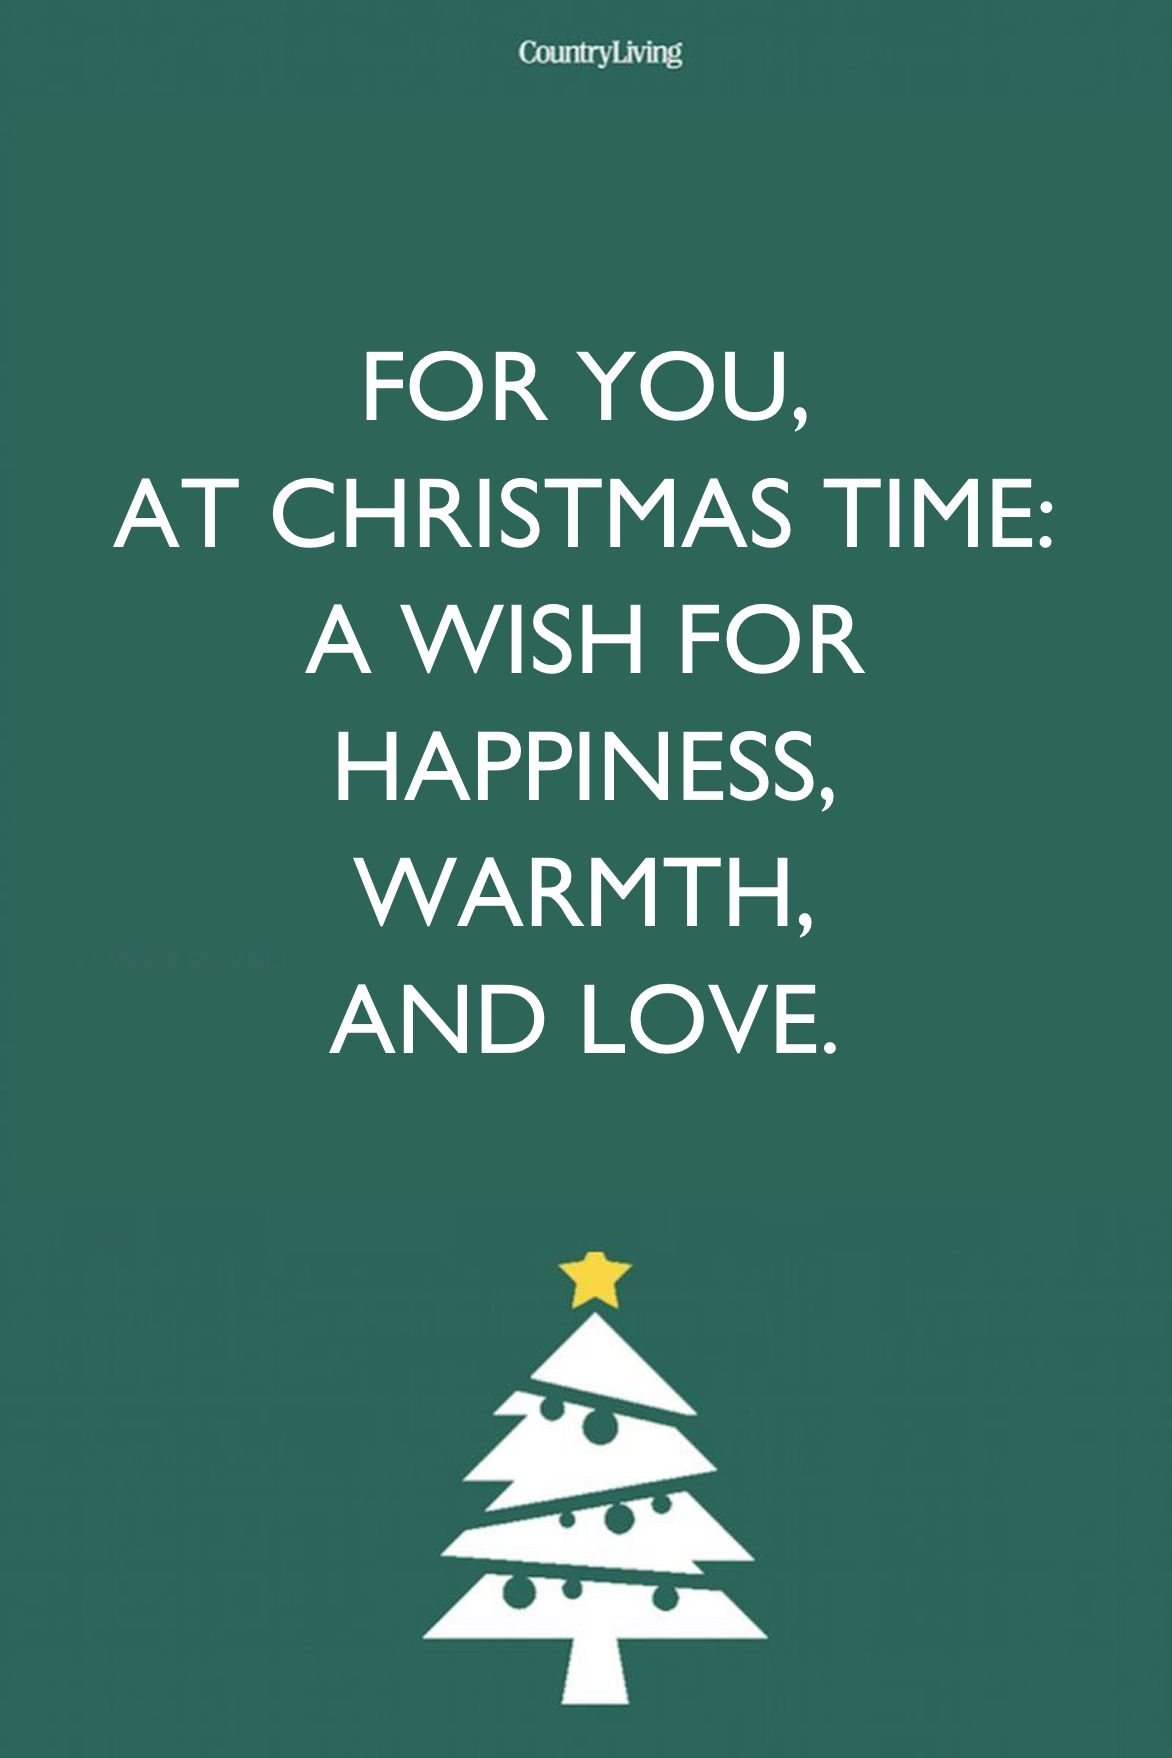 50 Best Merry Christmas Wishes for Friends - Merry Christmas ...